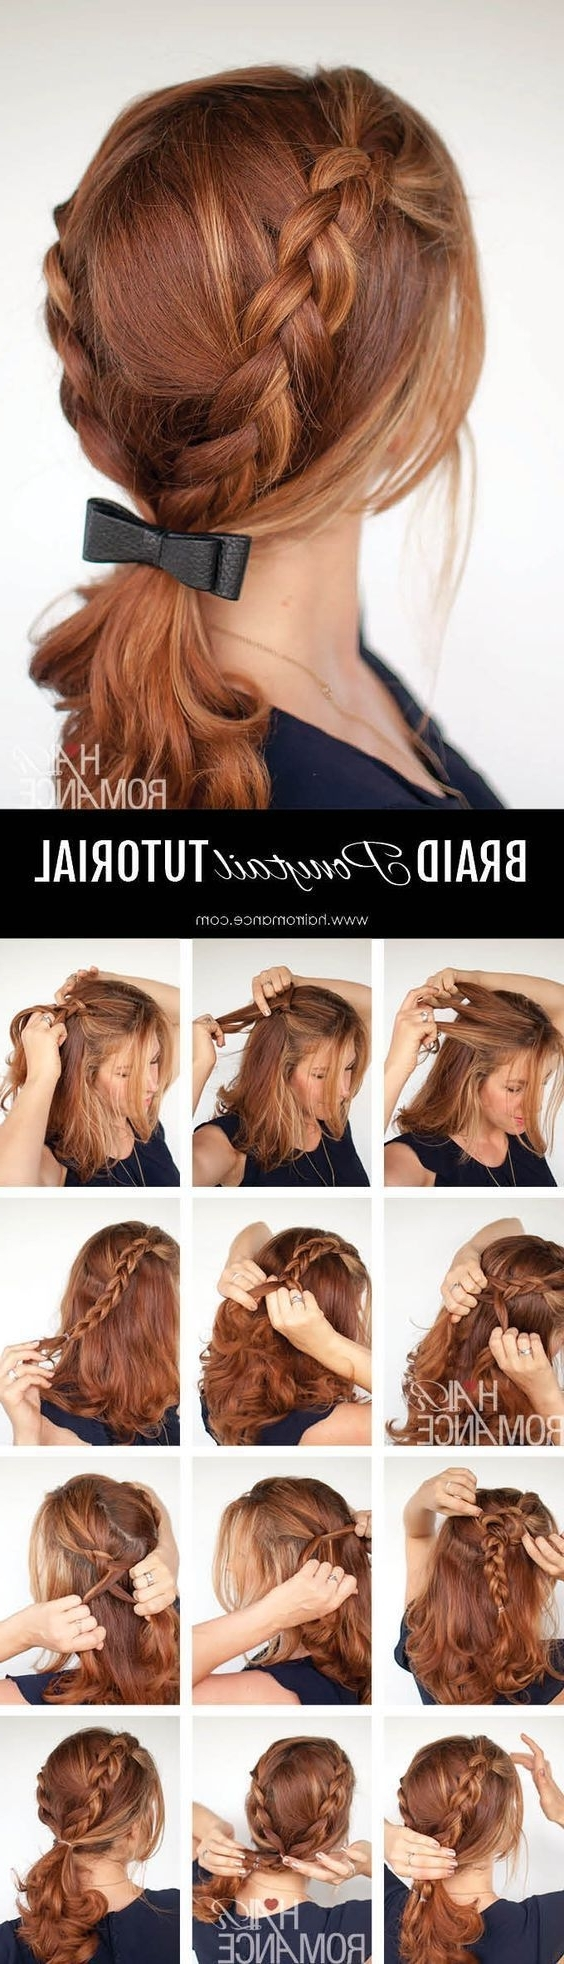 15 Ways To Style Your Lobs (Long Bob Hairstyle Ideas) – Pretty Designs In Recent Braided Lob Hairstyles (View 9 of 15)